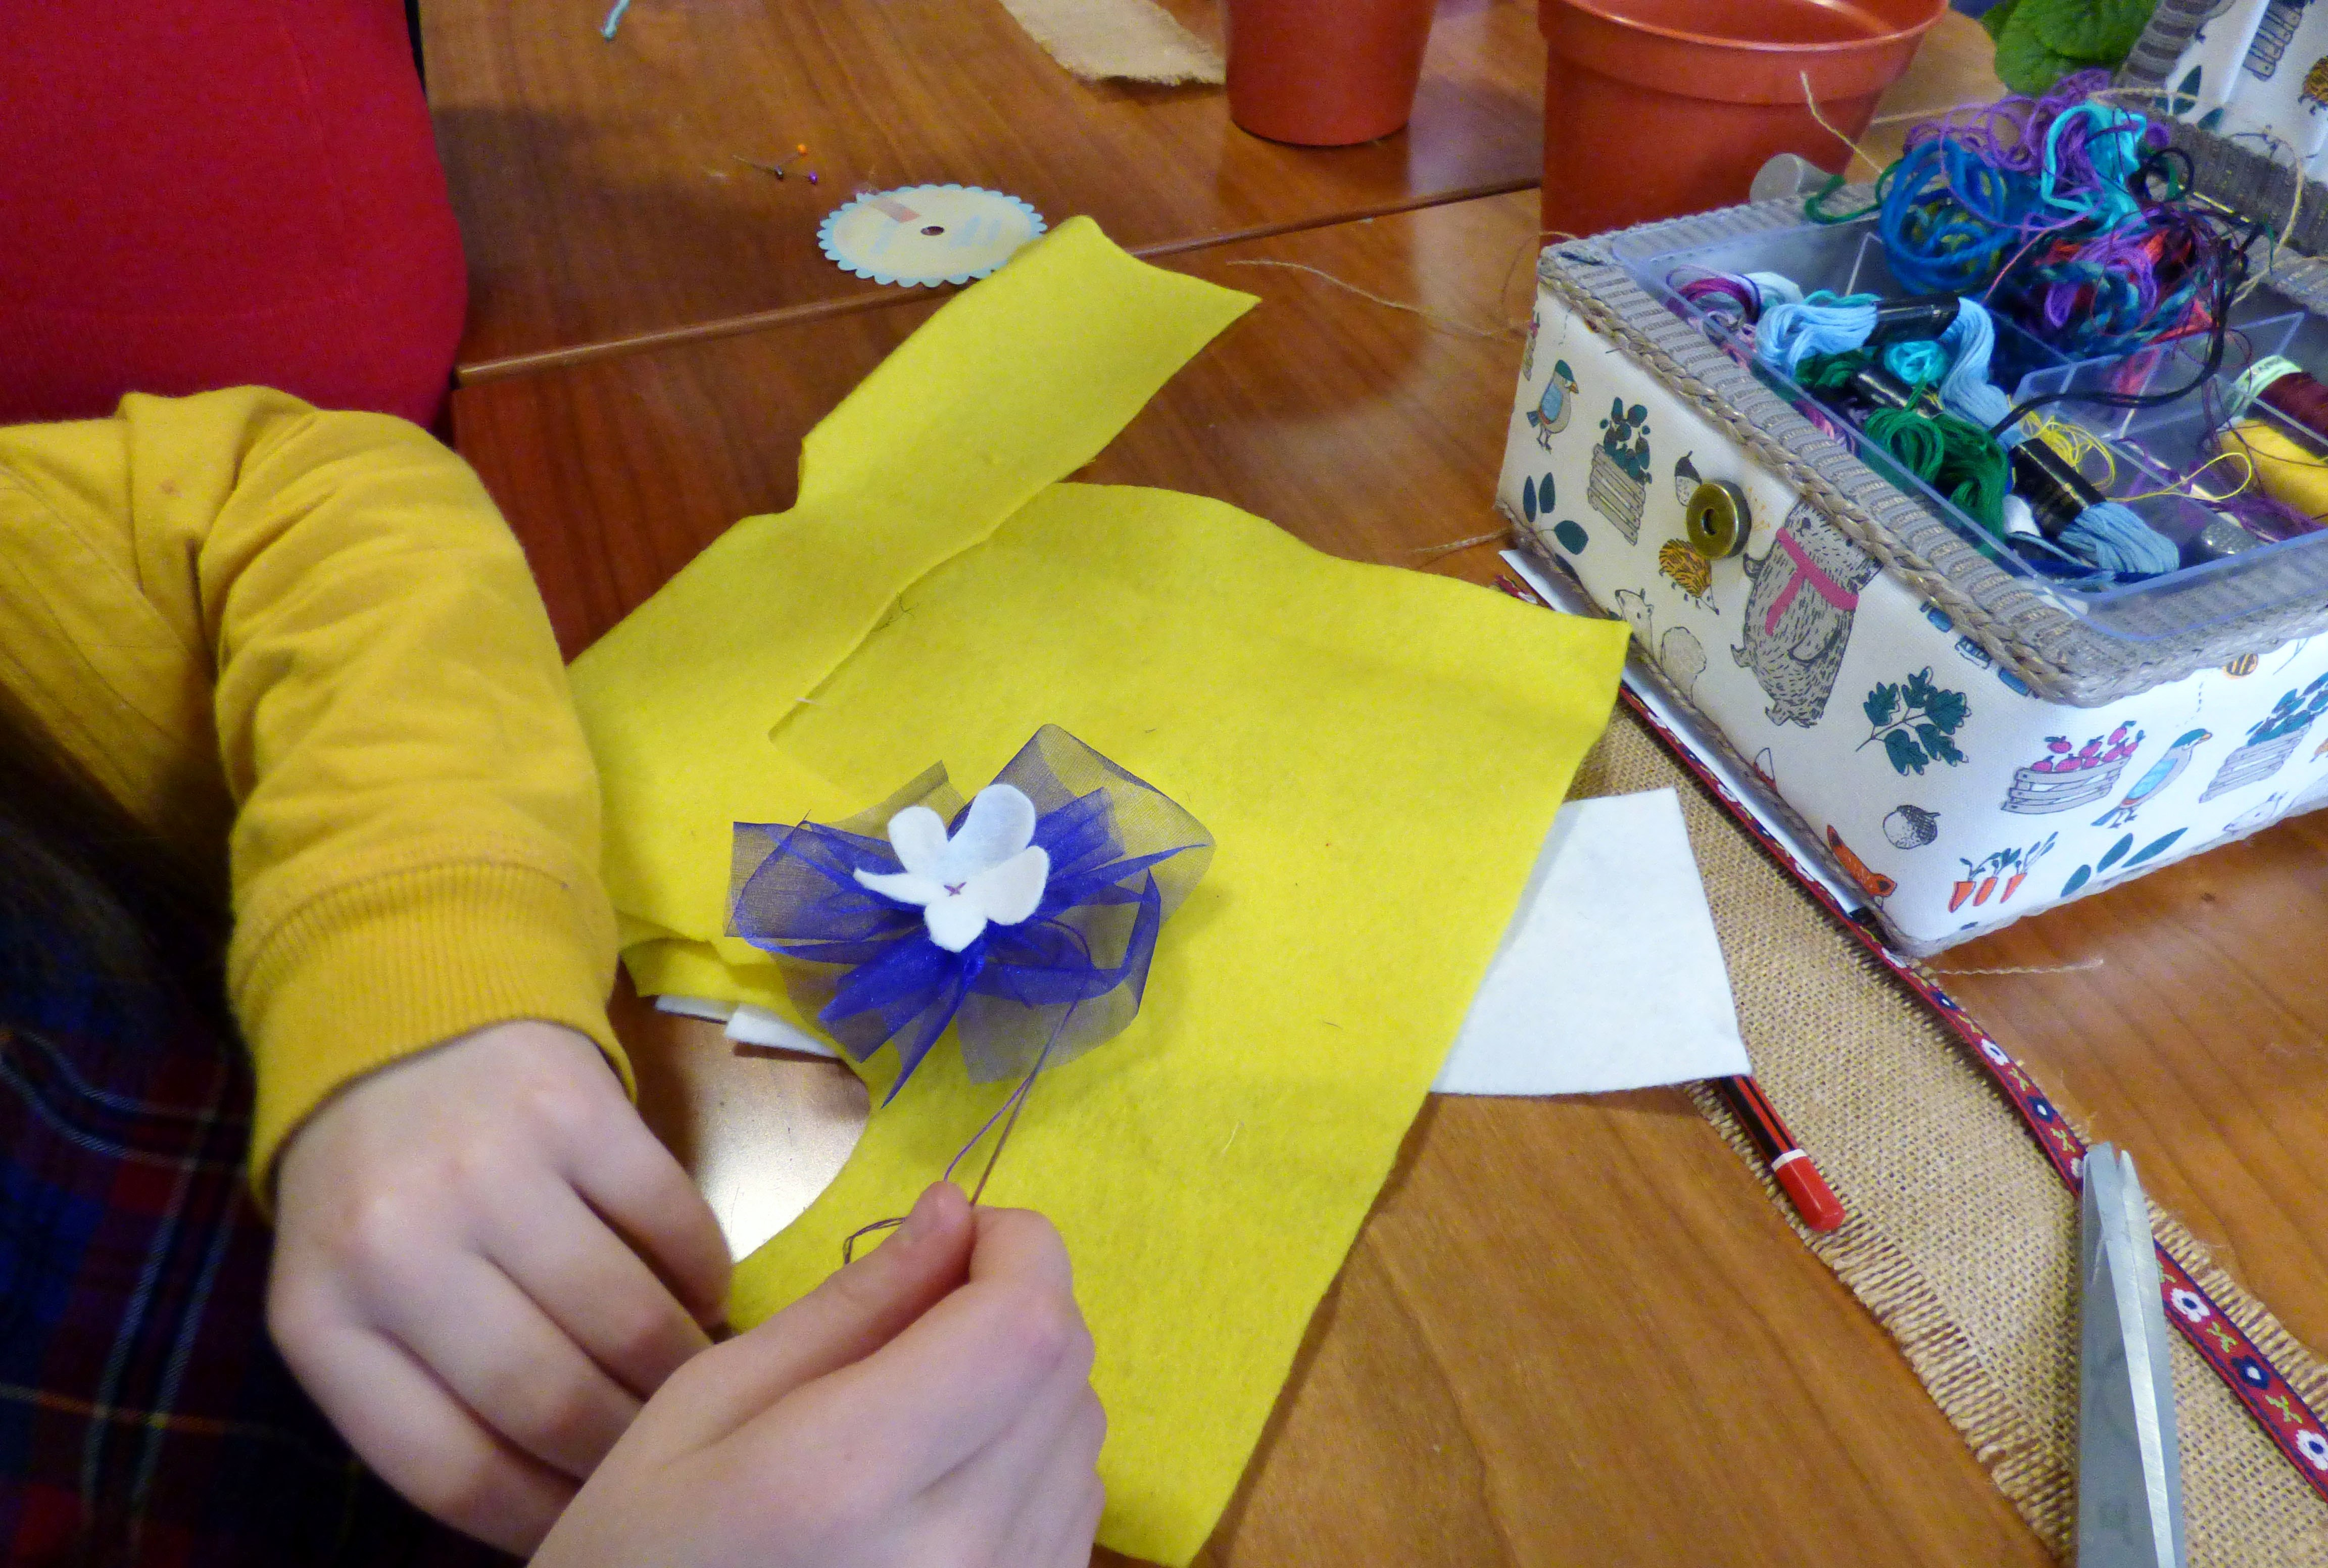 Marla is making a decorative flower to go on her plant pot band